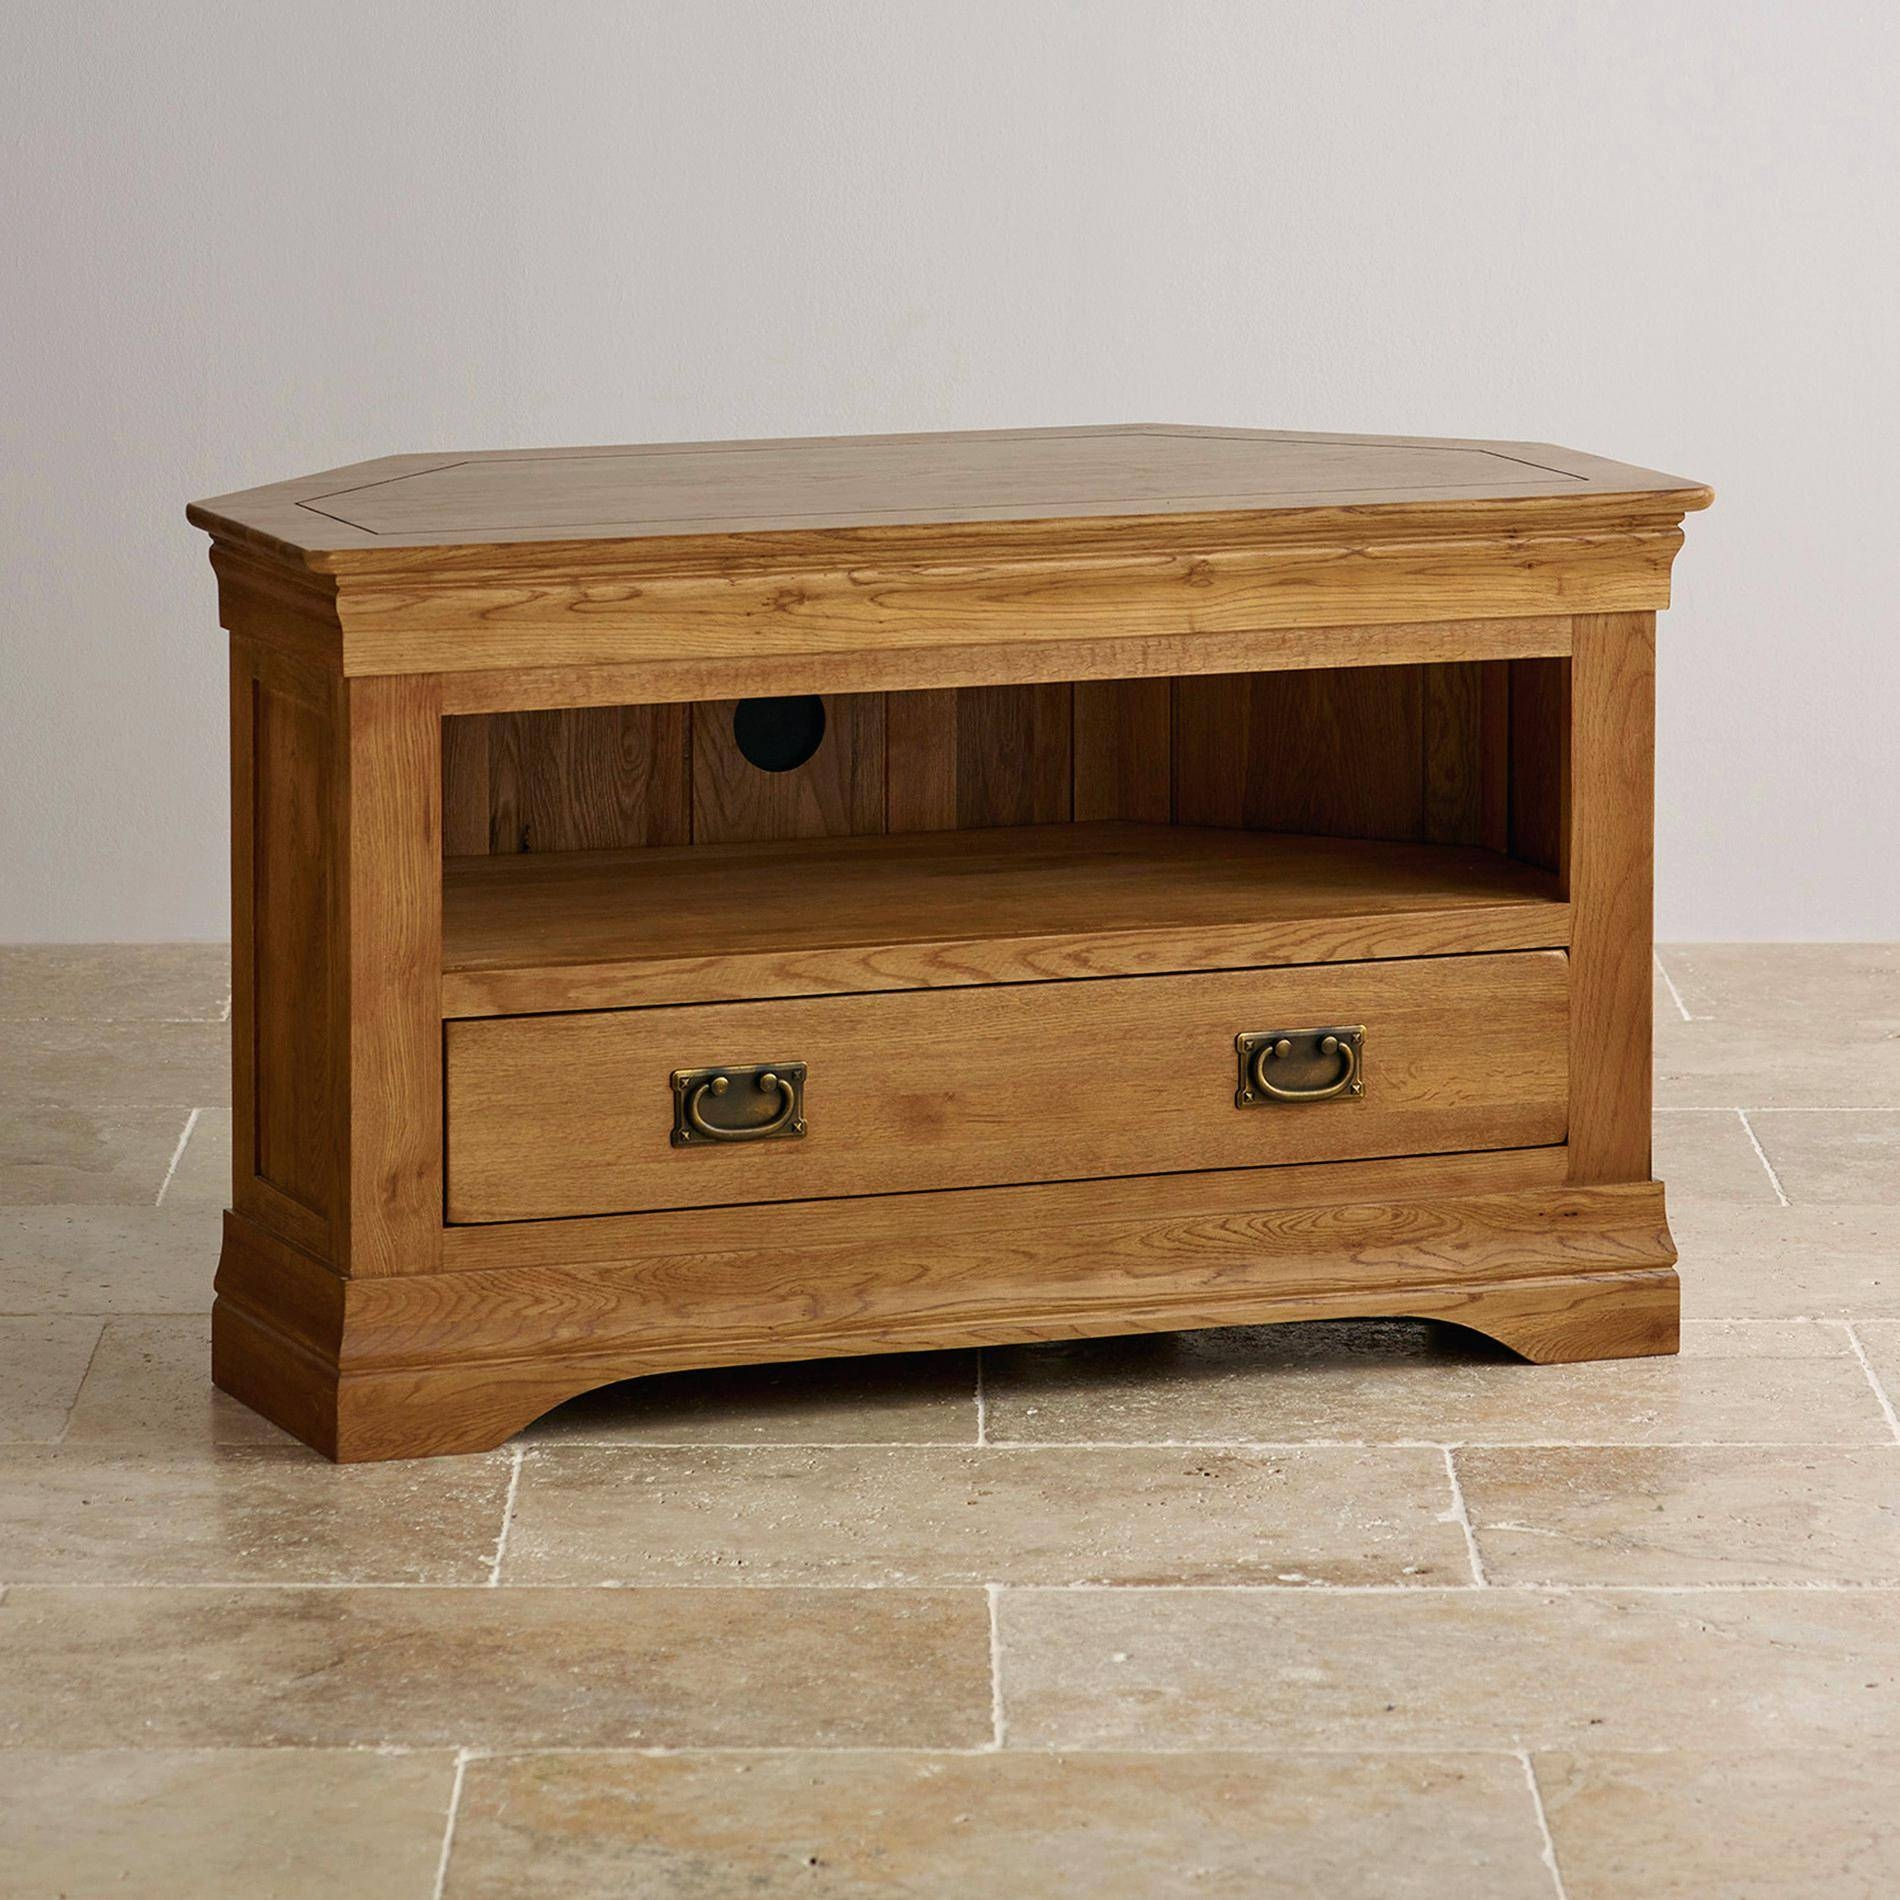 Tv Stand Cool Rustic Oak Corner With Drawer Regarding Previous Photo Cabinets For Flat Screens Doors